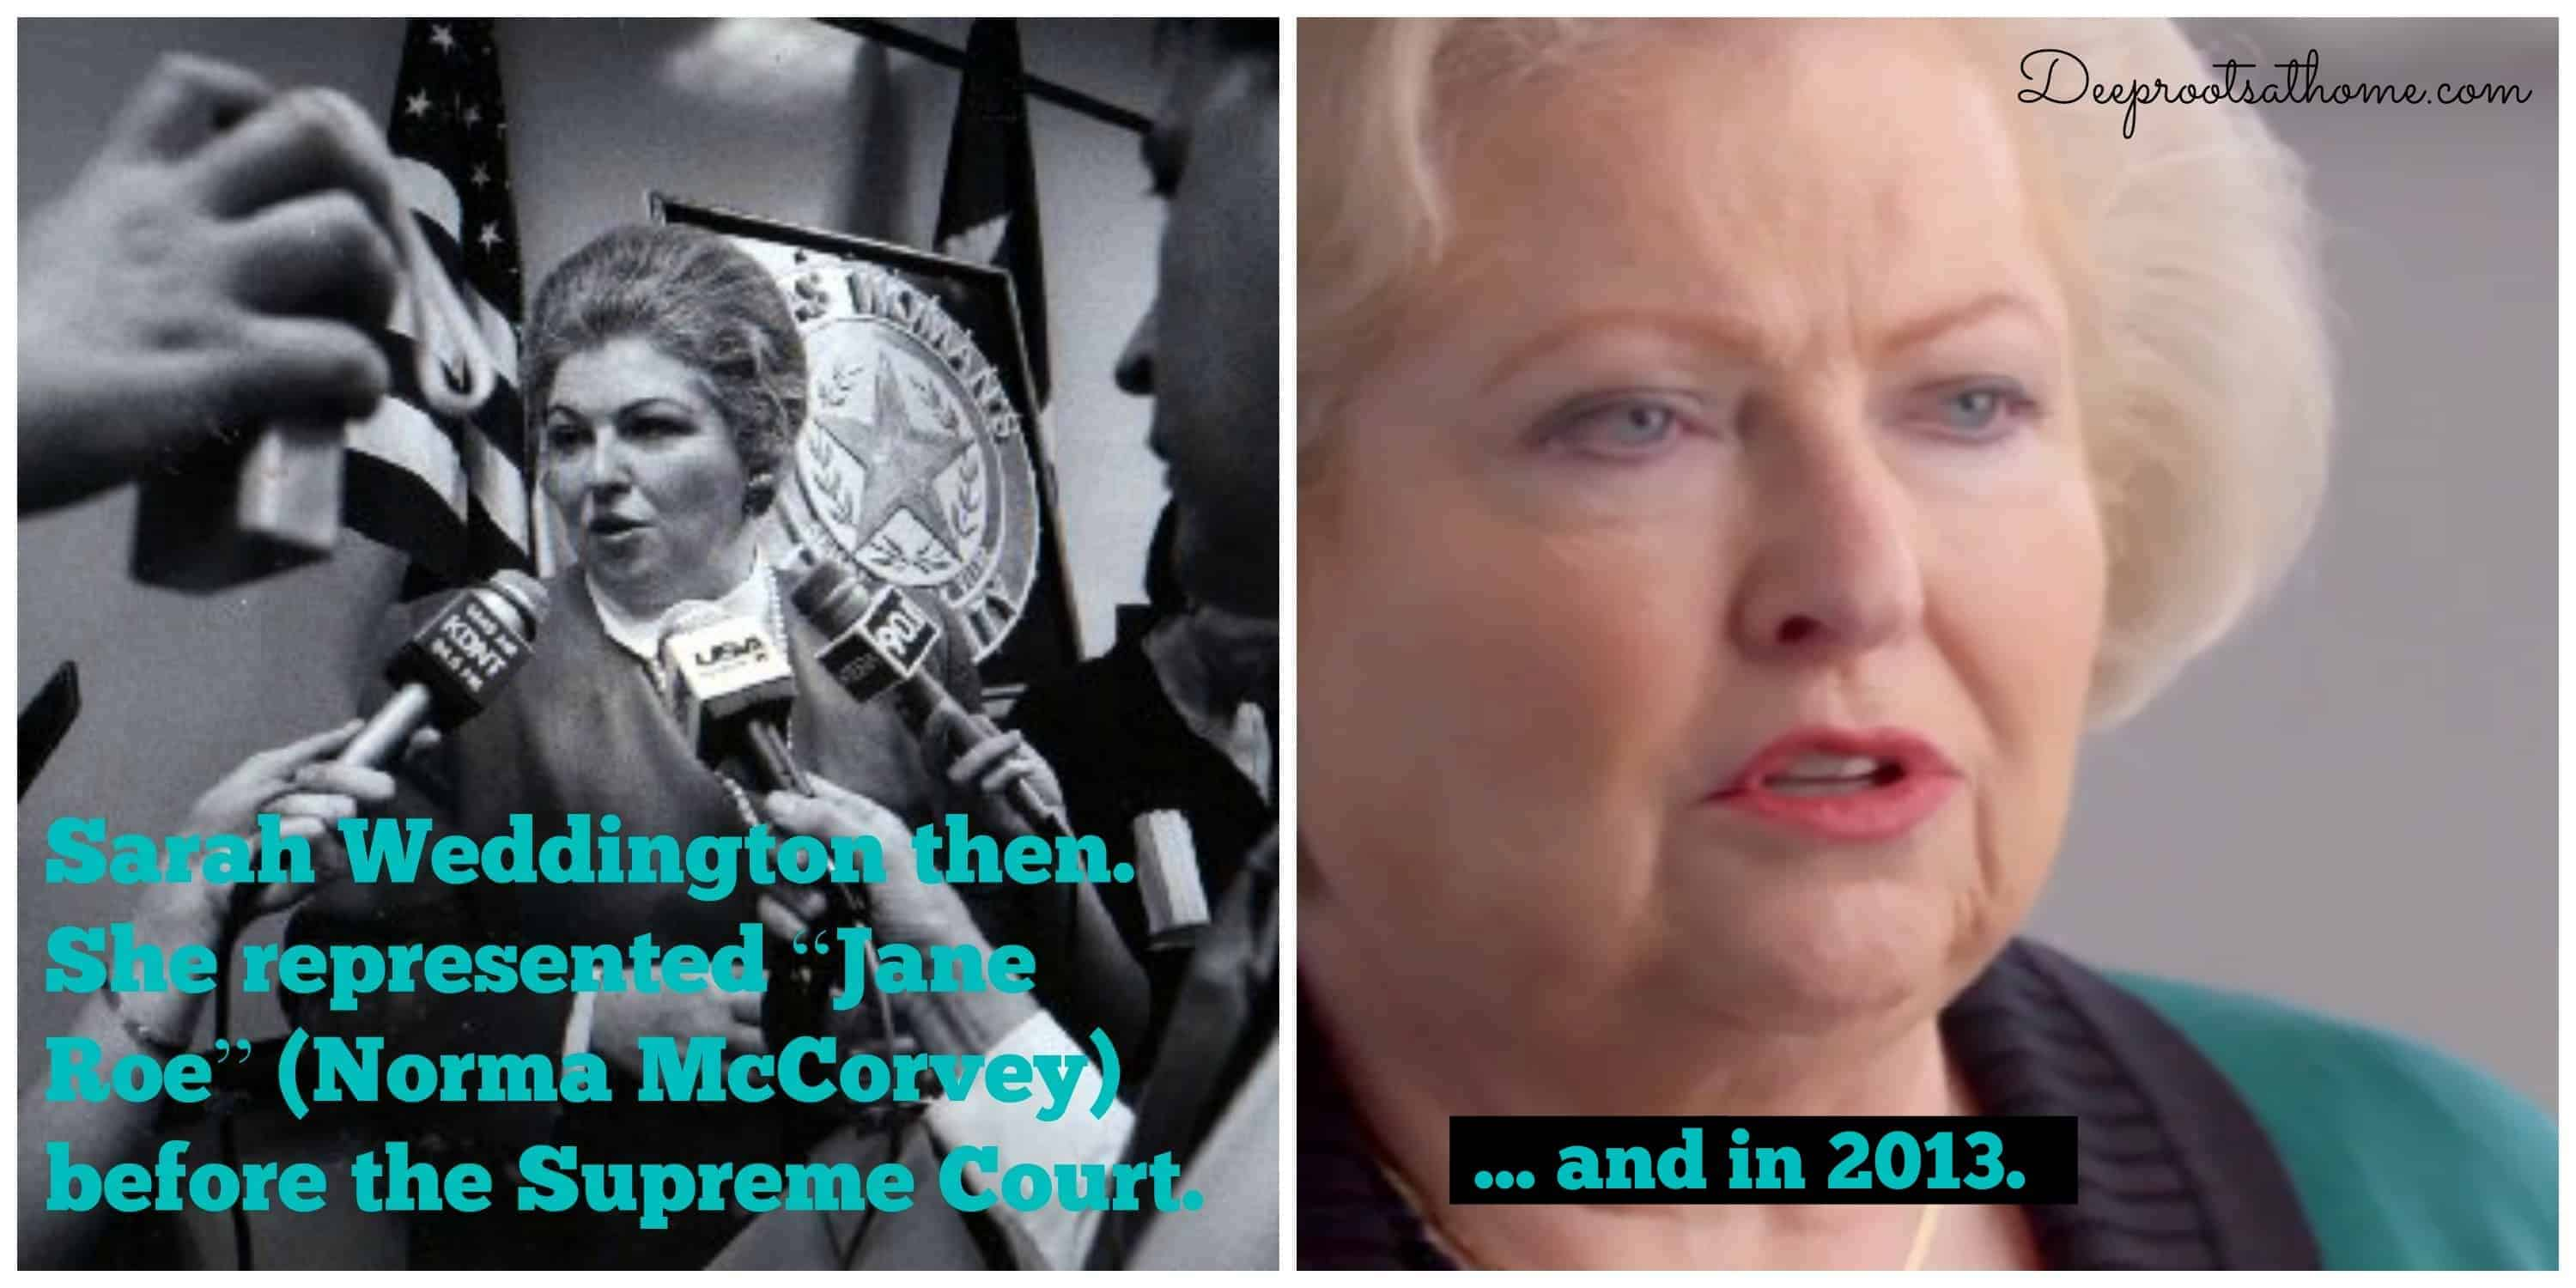 The Woman Behind Roe vs. Wade (and what I didn't know), Norma McCorvey, Justice Harry Blackmun, Sarah Weddington, Linda Coffee, adoption attorney Henry McCluskey, overturning case, Supreme Court, 1973, abortion on demand, Texas, Jack Ruby, Lee Harvey Oswald, Gospel Coalition, Justin Taylor, termination of pregnancy, first do no harm, Doe v. Bolton, abortion clinic, Emily Mackey, conversion, pro-life, pro-abortion, right to life movement, Republican-appointed Justices, Henry B. Wade, Dallas DA, 'legal' child killing, sexuality, purpose of life, pseudonym, quote, Dr. Horatio R. Storer, Jane Roe